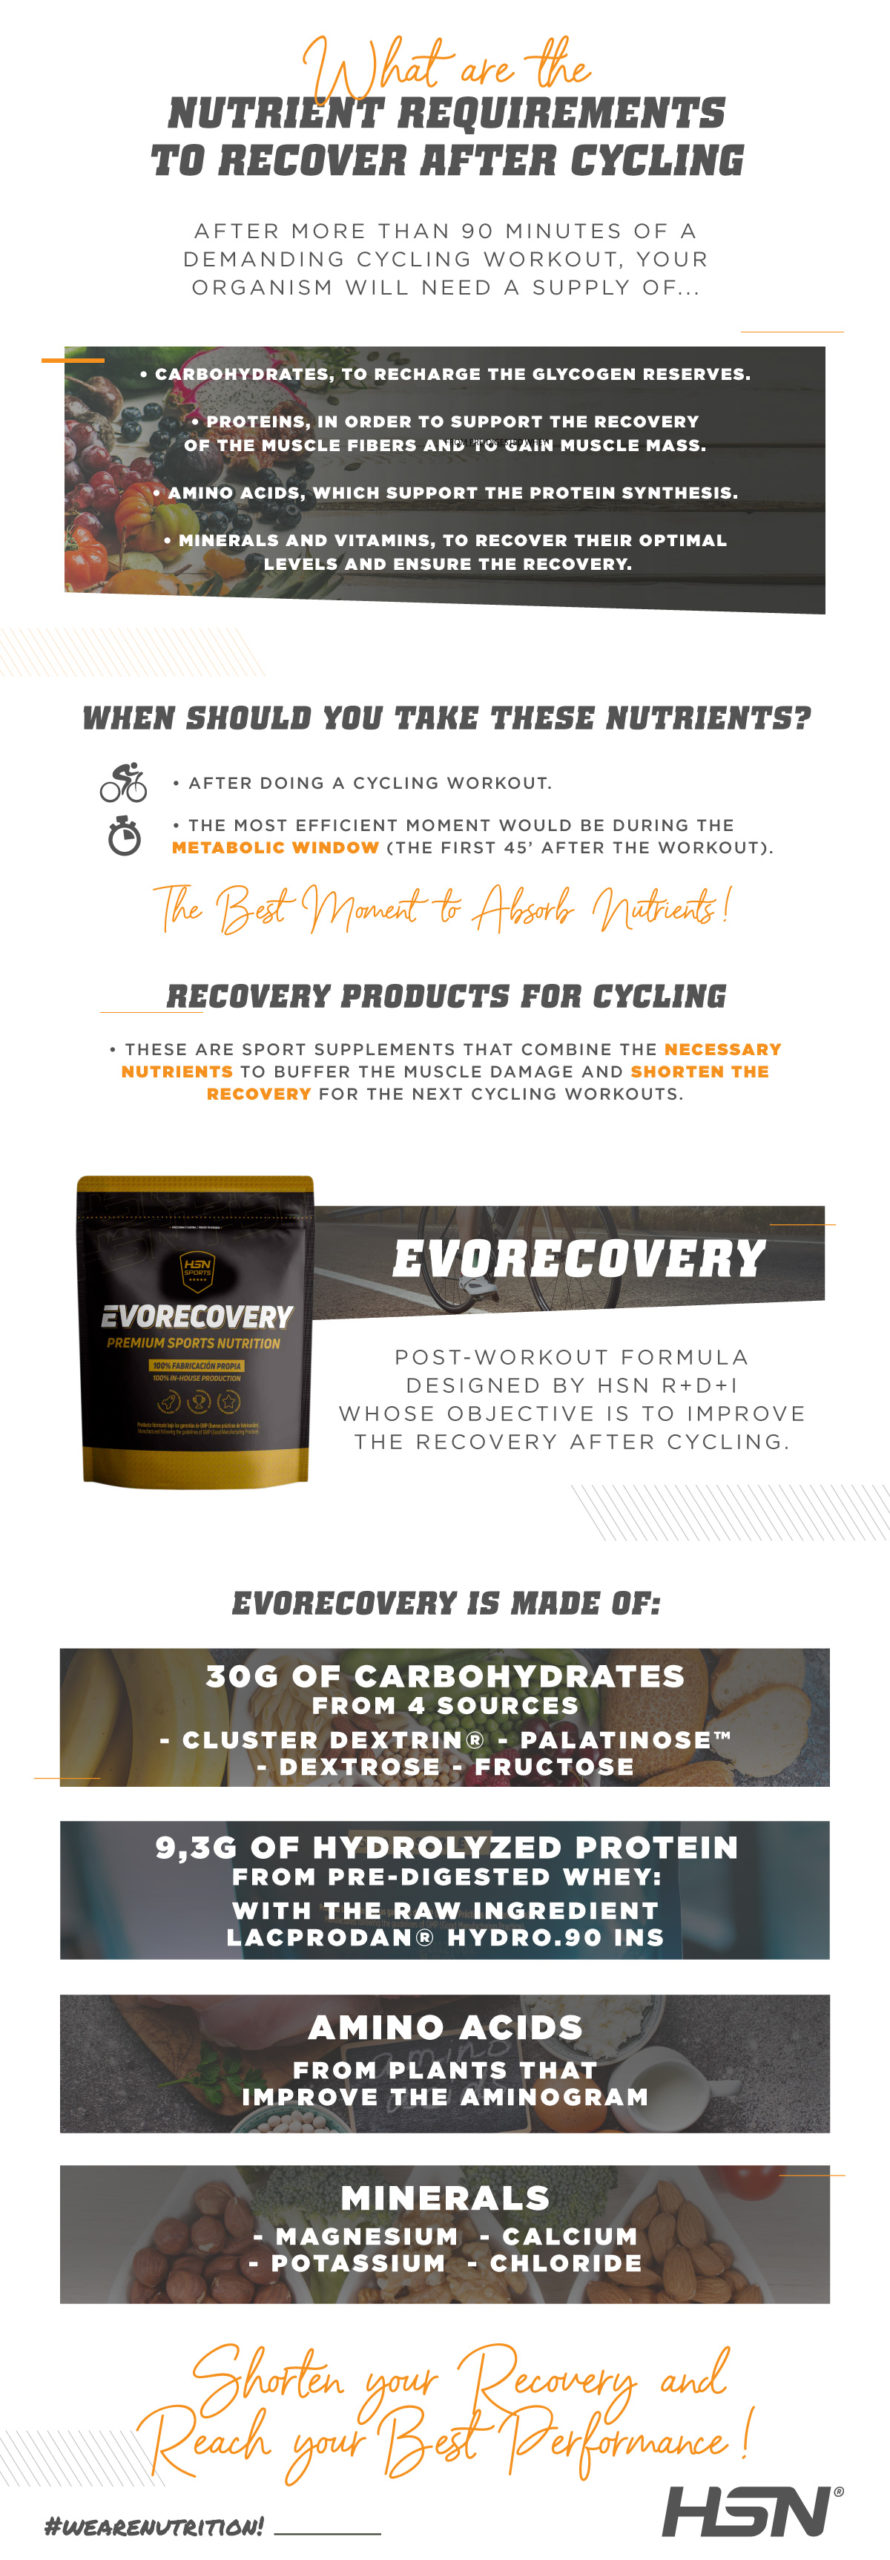 Evorecovery Infographic